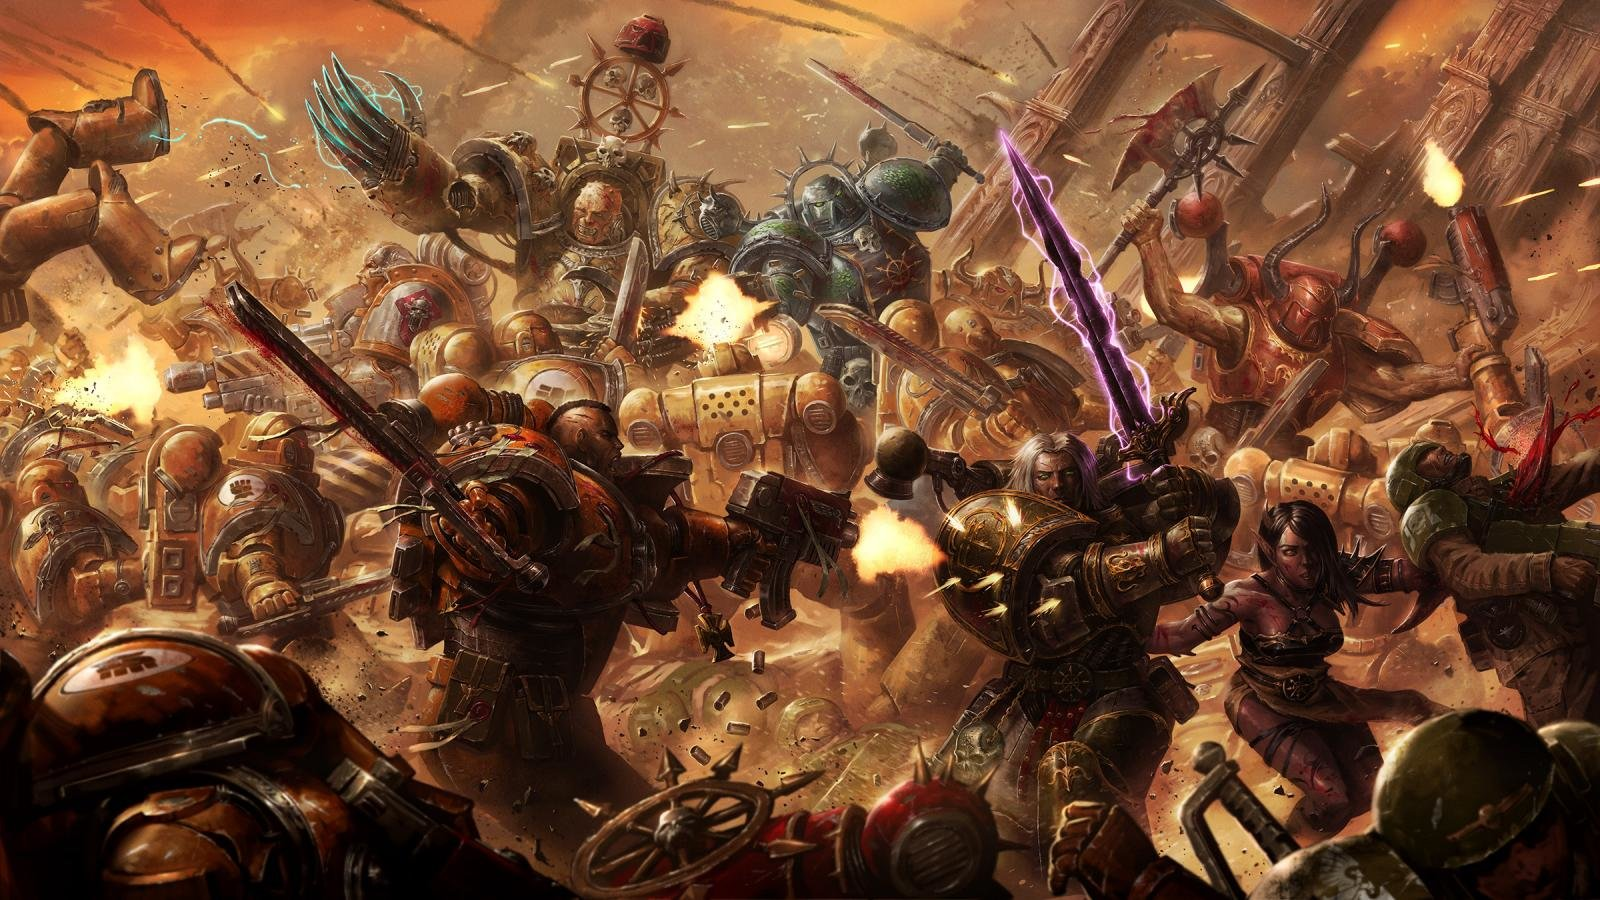 Download hd 1600x900 Warhammer 40k computer wallpaper ID:272267 for free